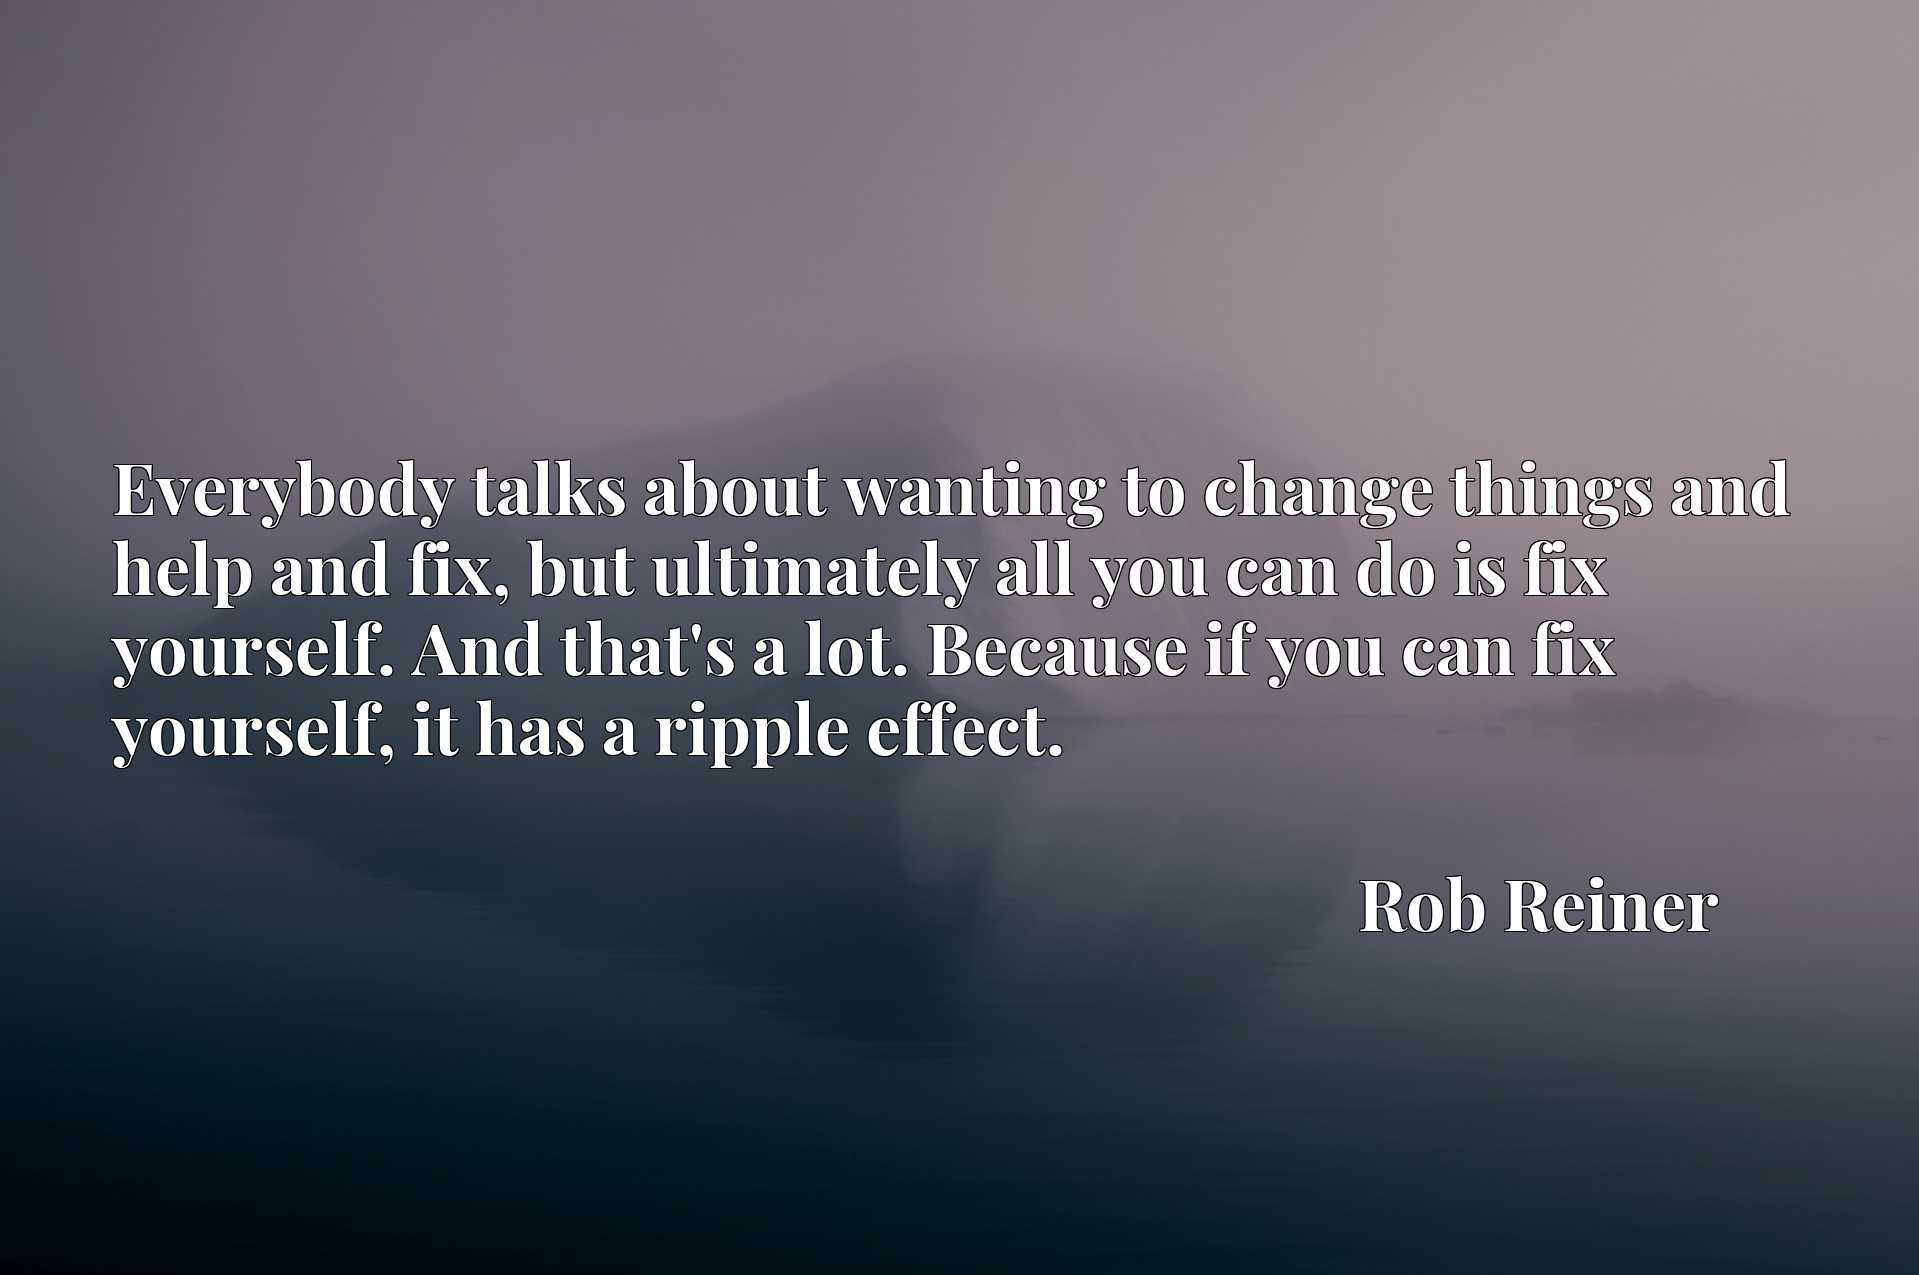 Everybody talks about wanting to change things and help and fix, but ultimately all you can do is fix yourself. And that's a lot. Because if you can fix yourself, it has a ripple effect.